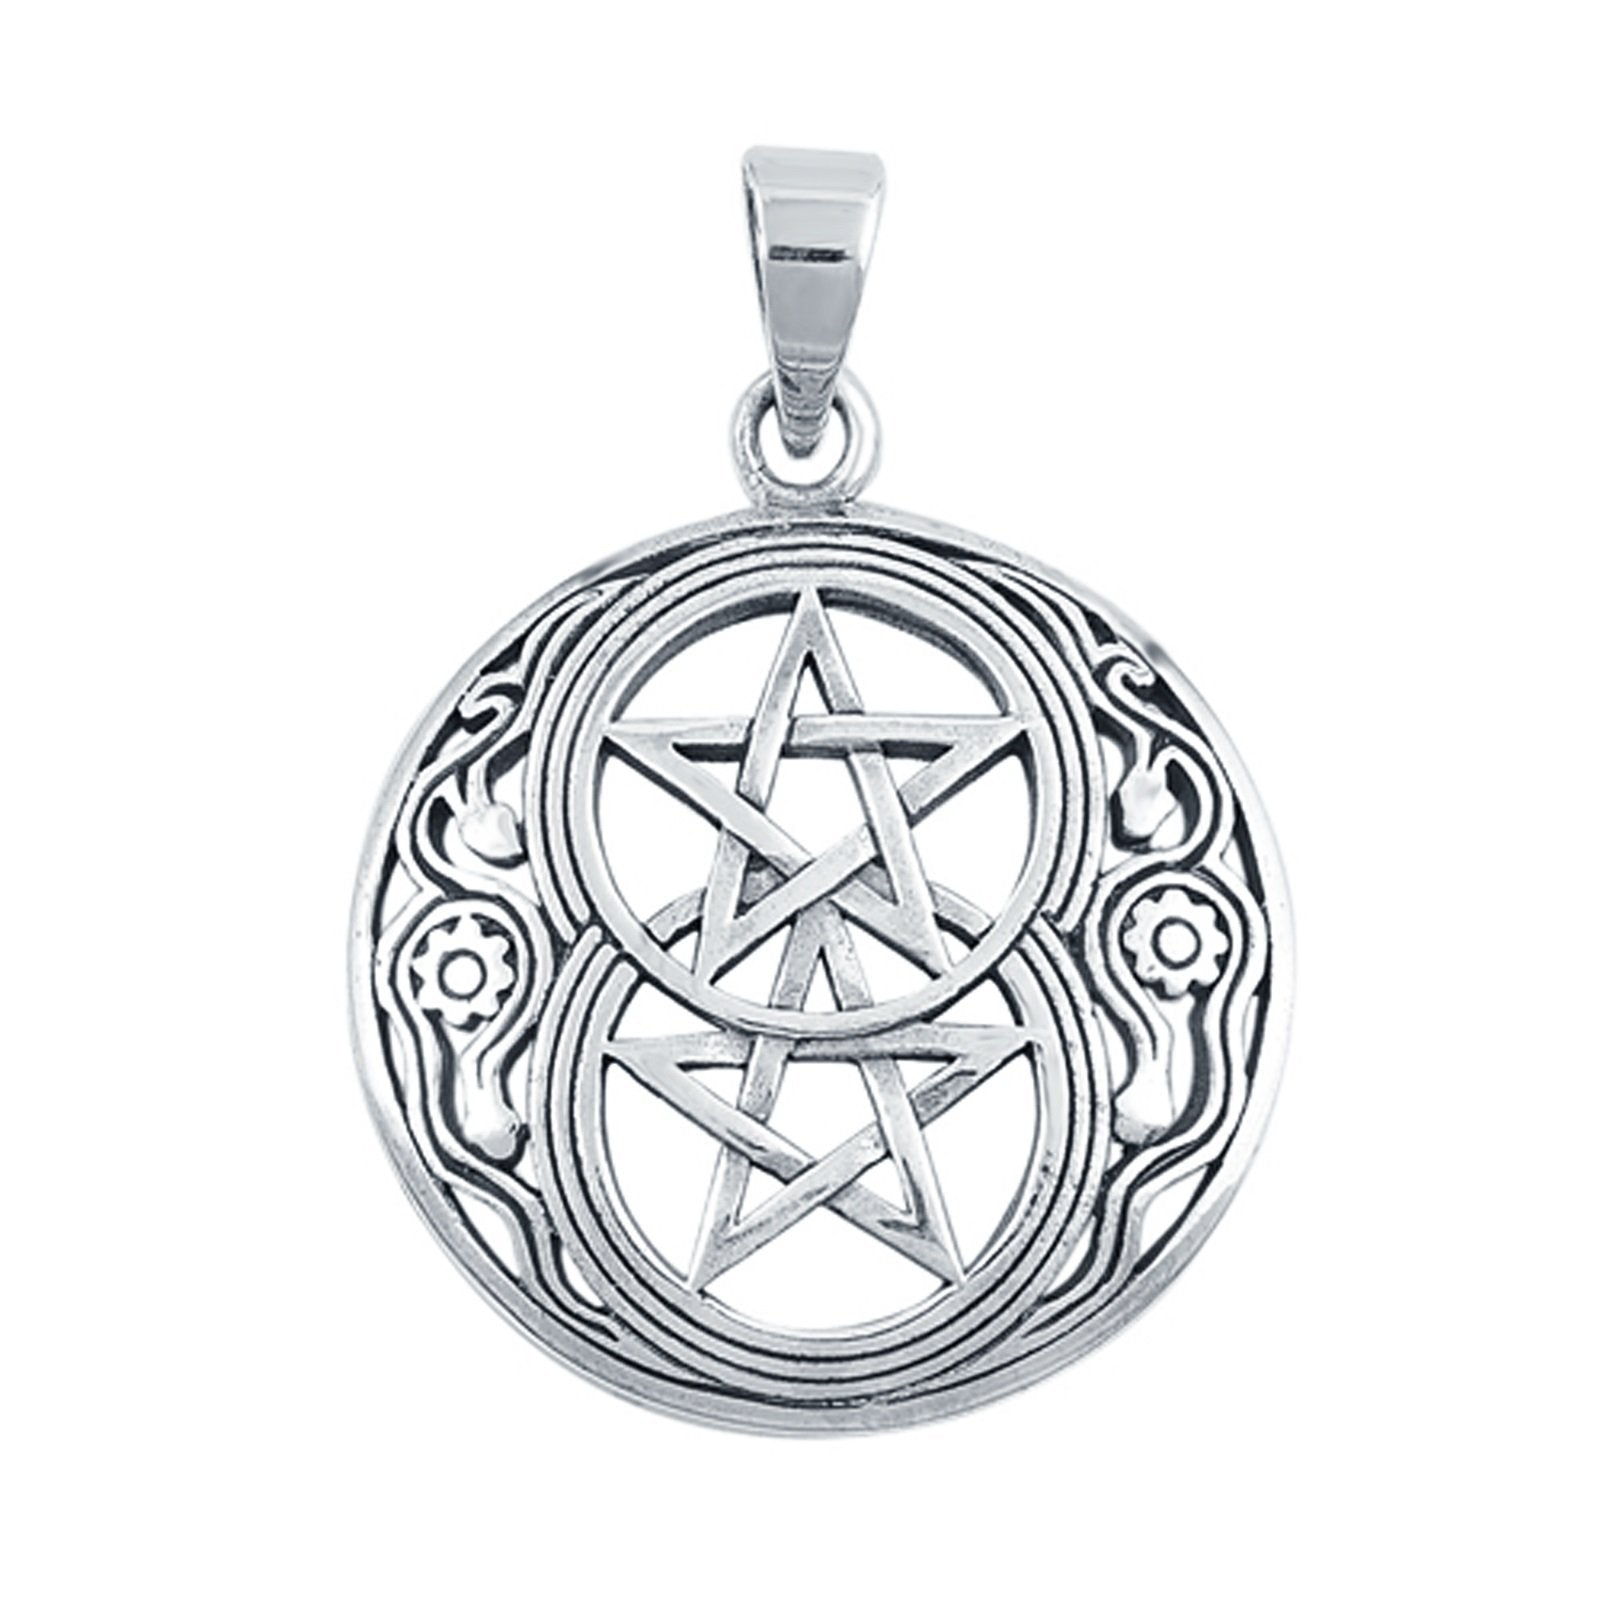 Devil Star Pendant Charm Fashion Jewelry 925 Sterling Silver